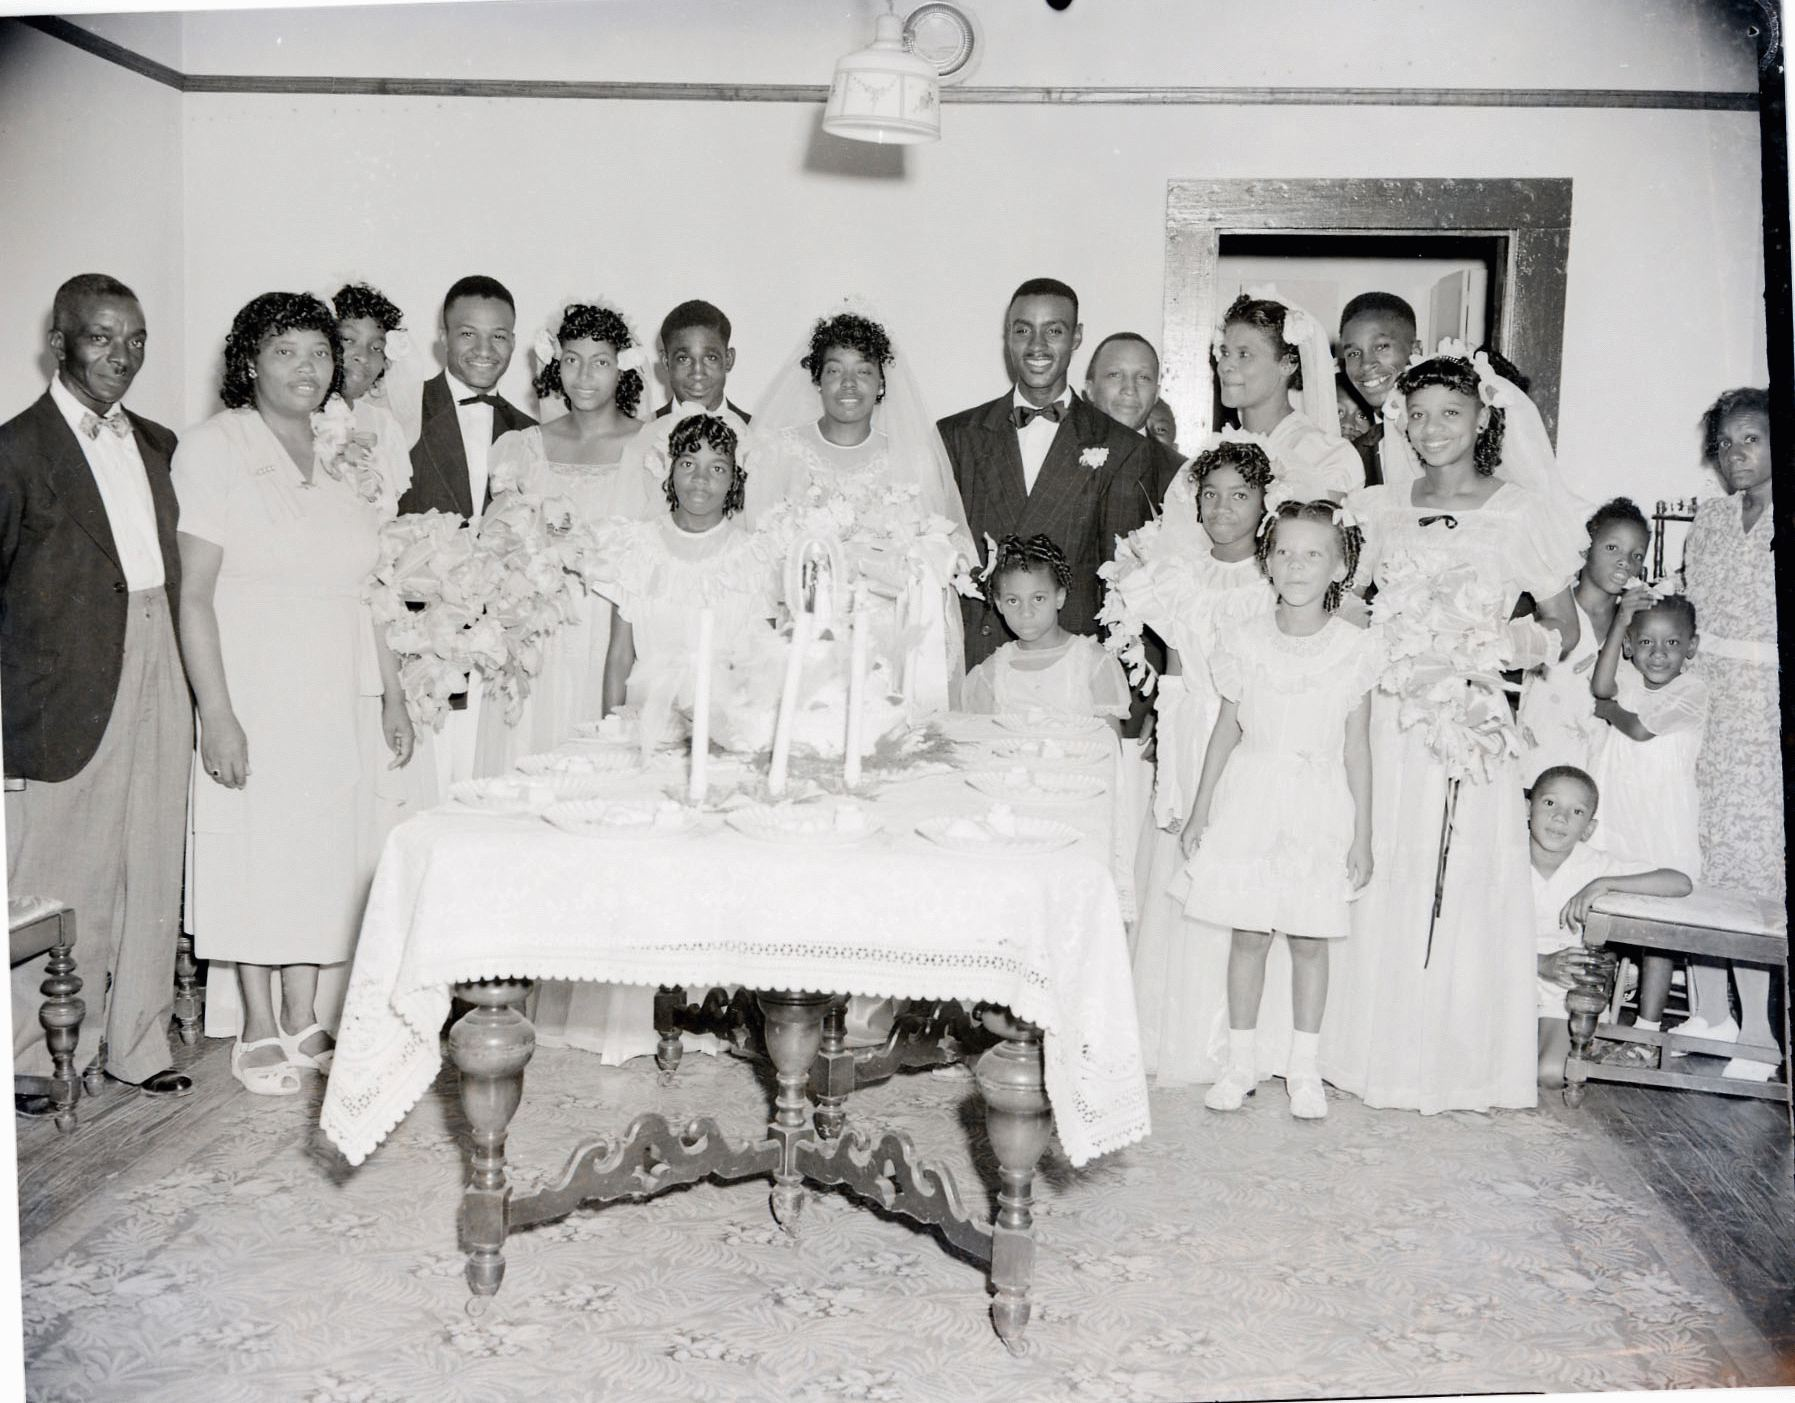 Wedding photo from the Scafidi Collection